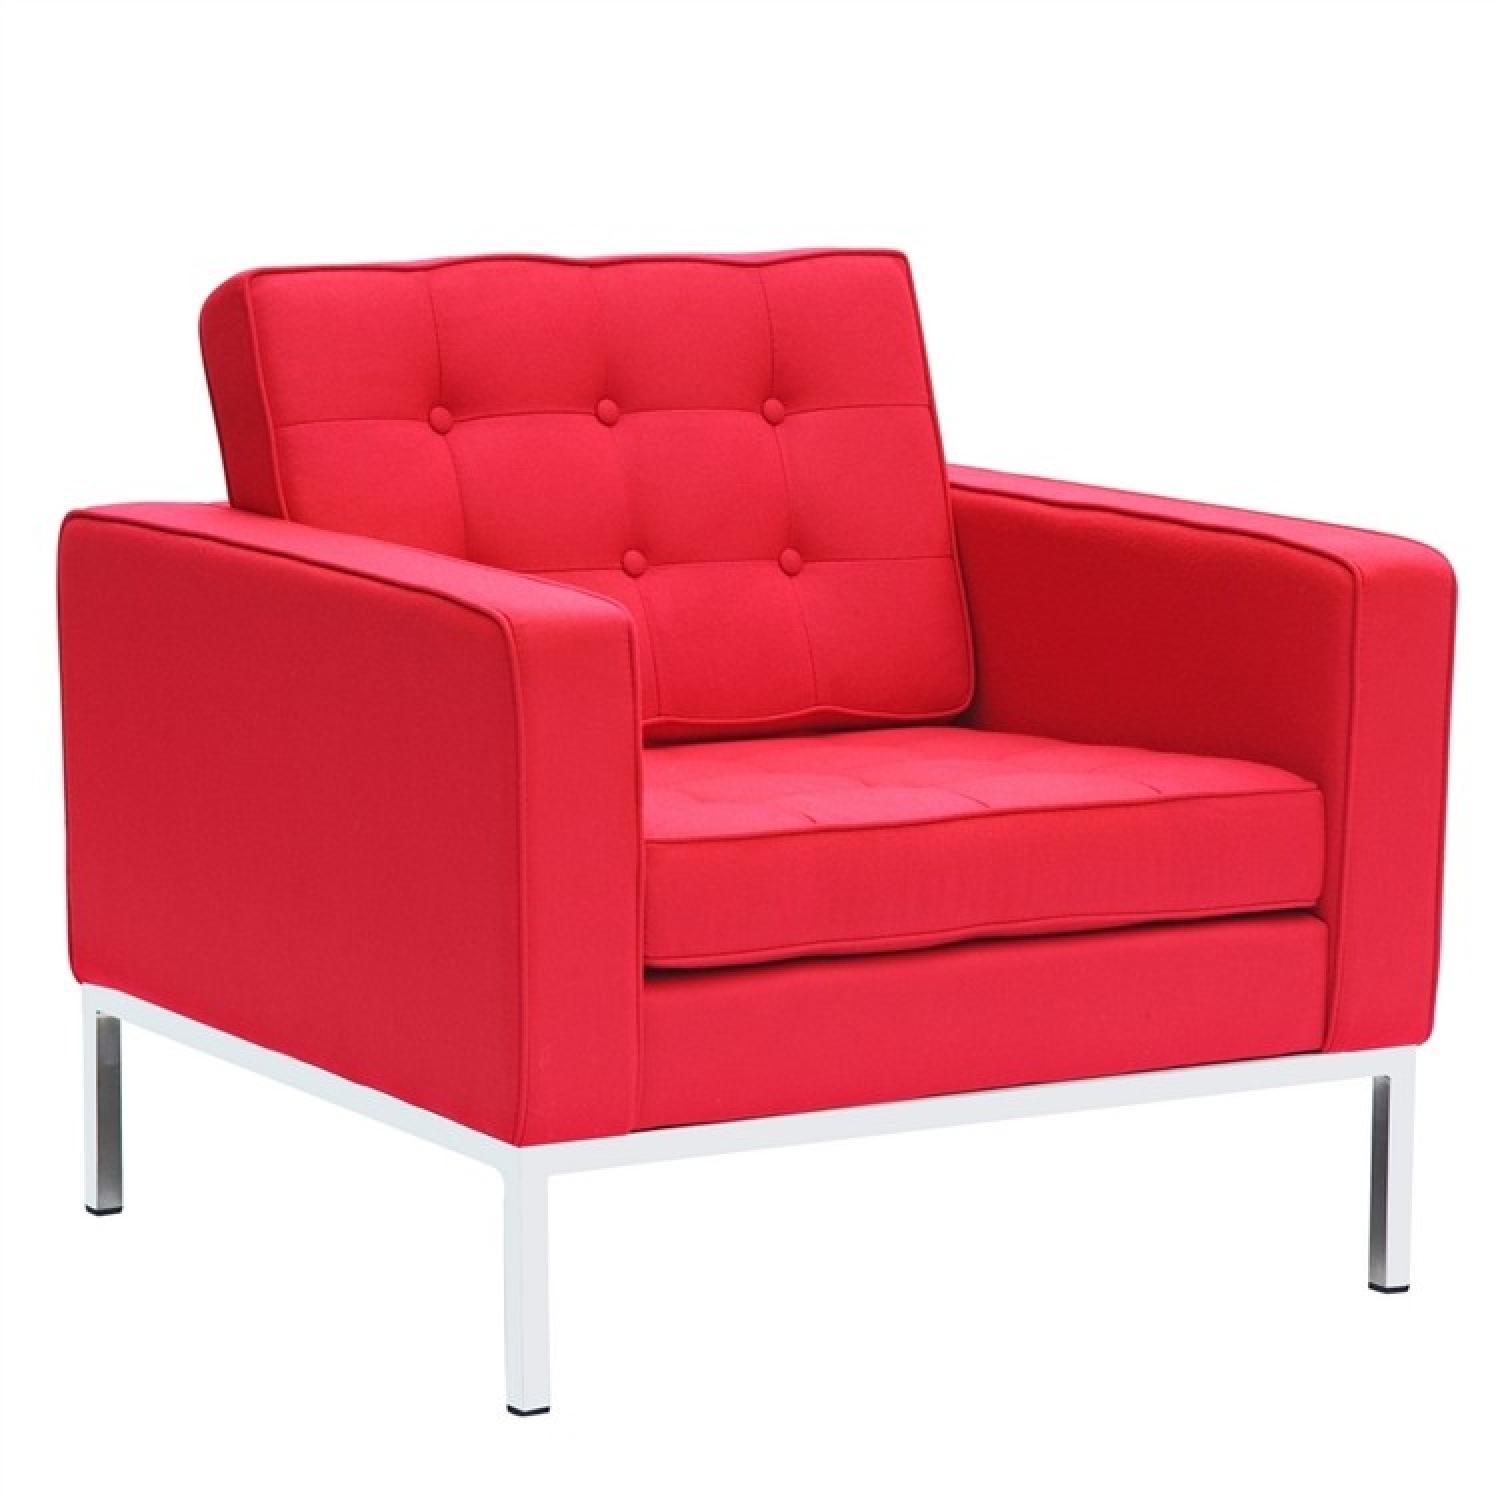 Mid Century Style Modern Accent Chair w/ Tufted Back & Seat Cushion in Red Wool Fabric